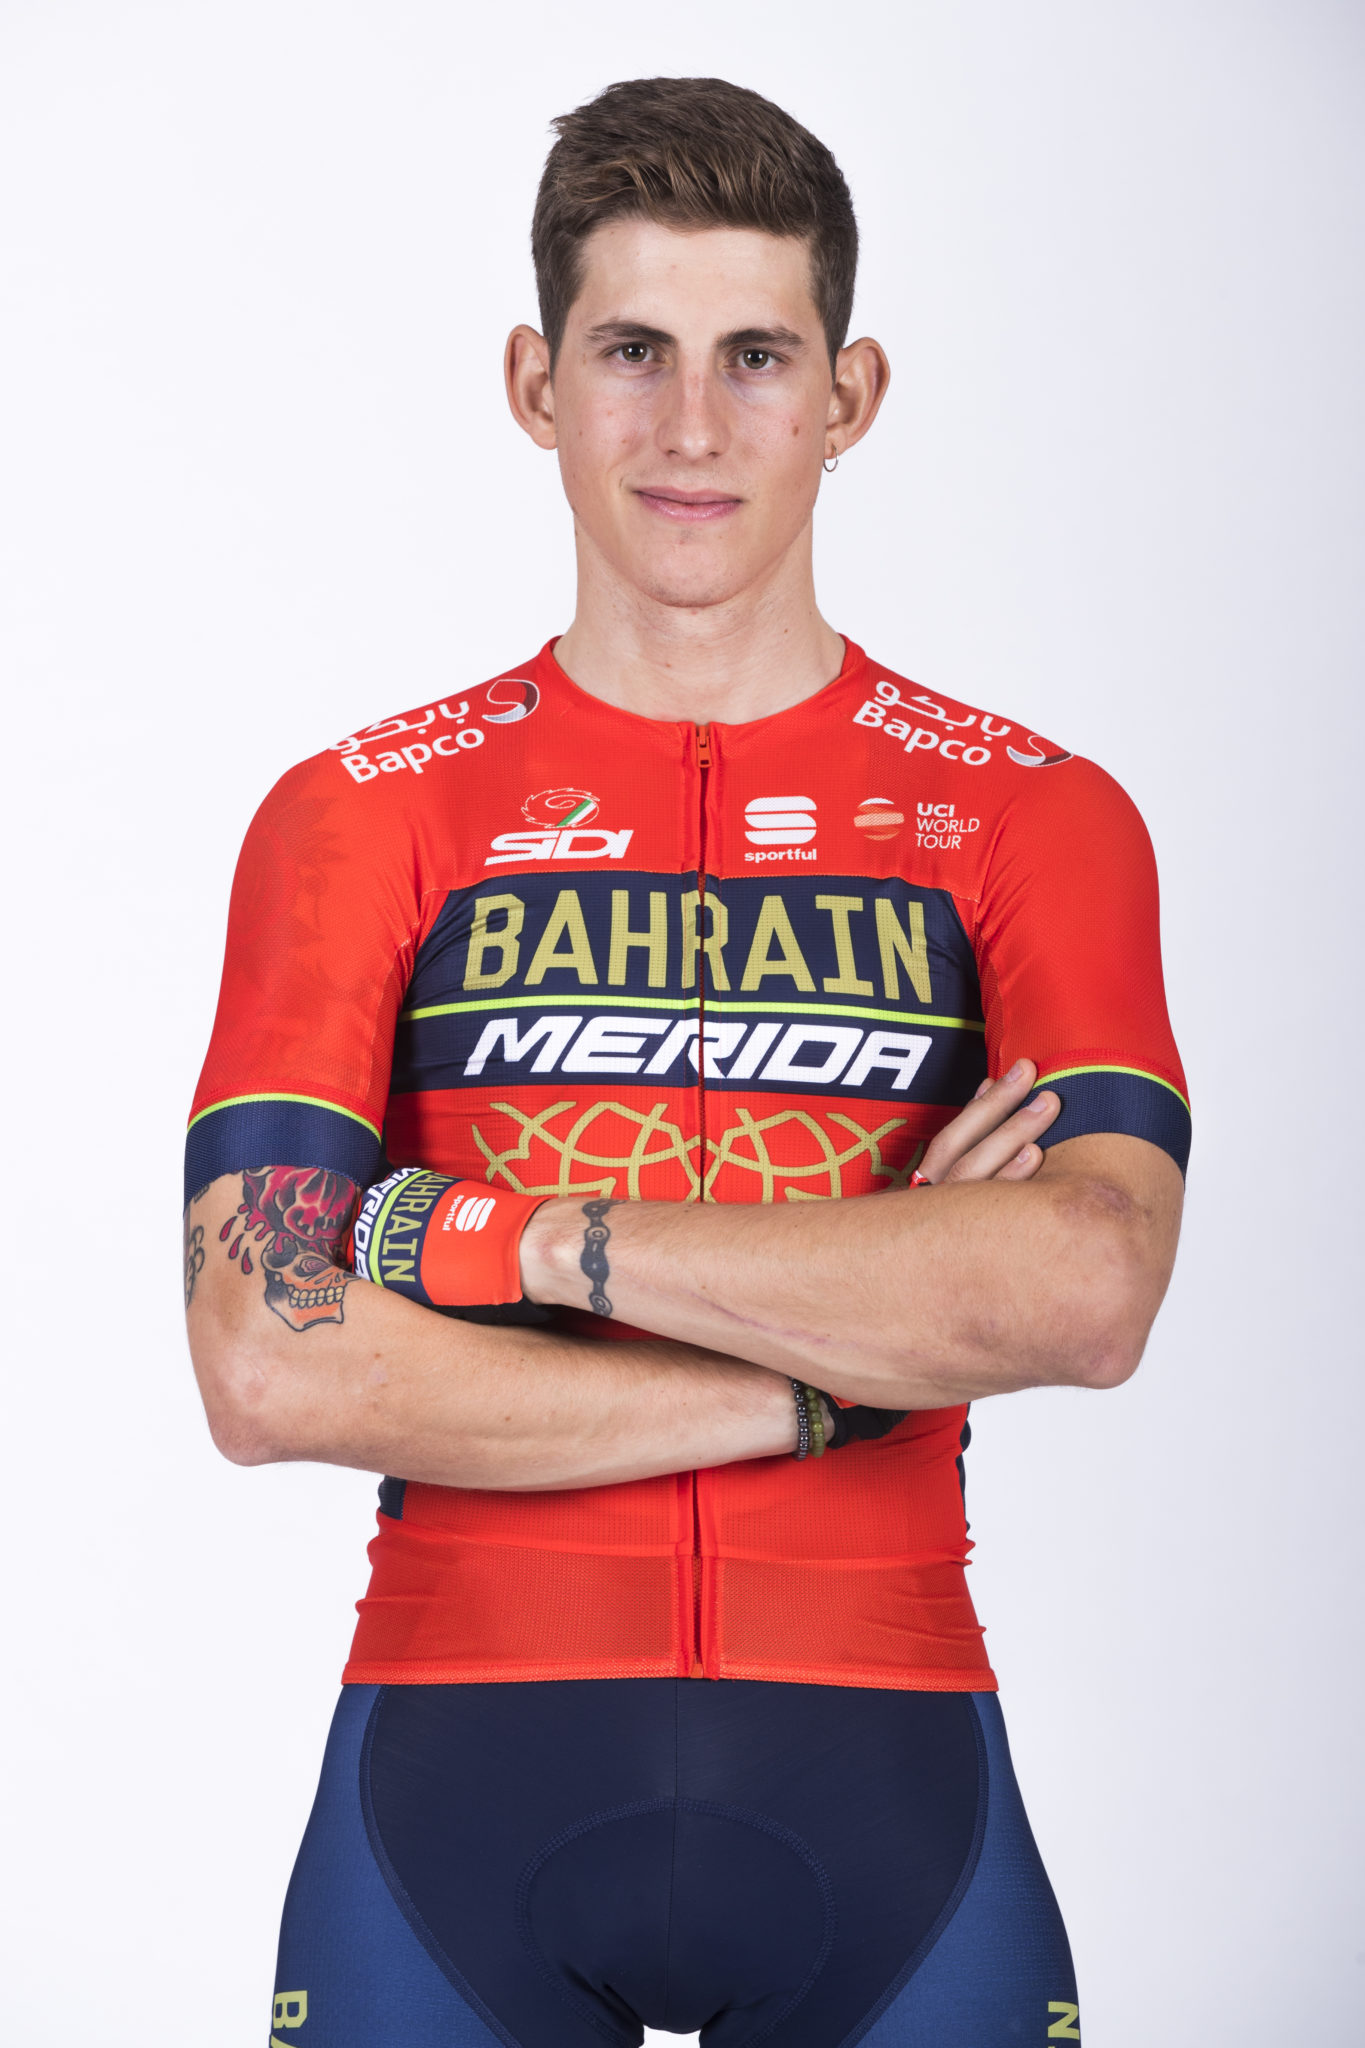 77b2328ed BAHRAIN MERIDA Pro Cycling Team is happy to announce the two years   contract renewal of Iván Garcia Cortina